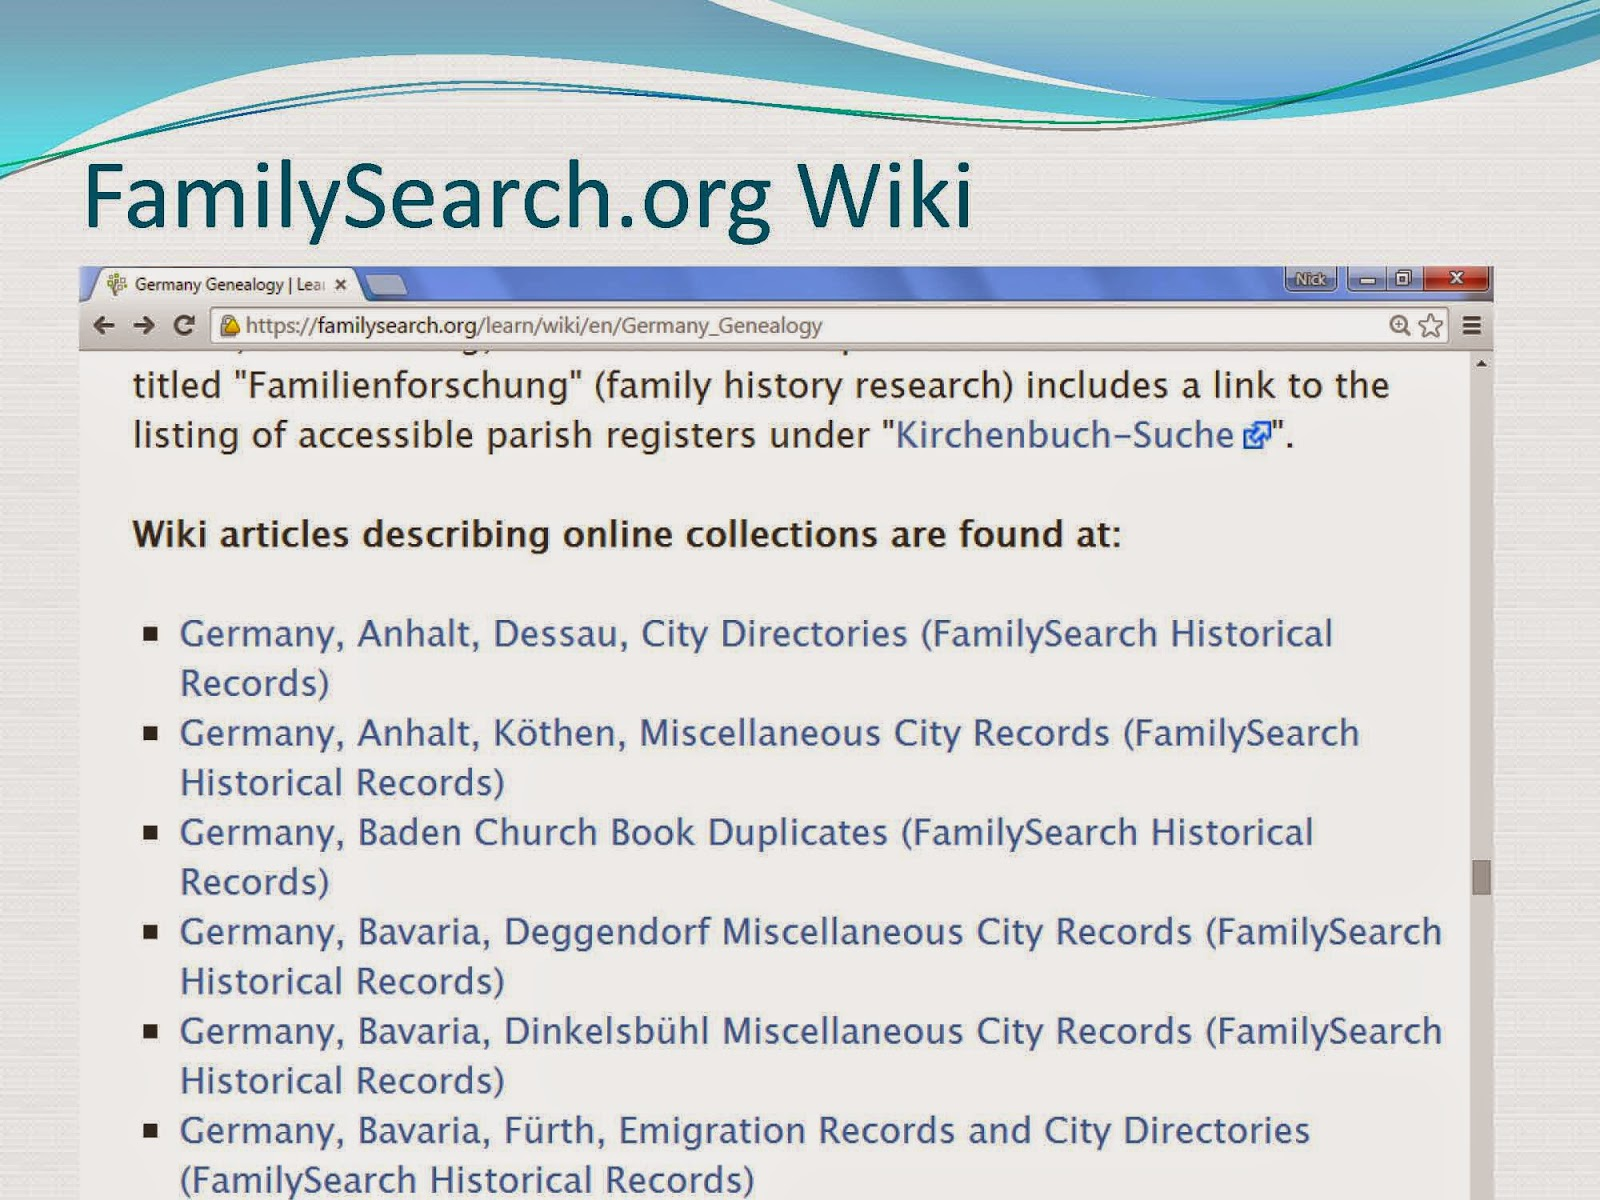 Baltimore county maryland genealogy learn familysearch org - Source German Genealogy Page On The Family Search Wiki